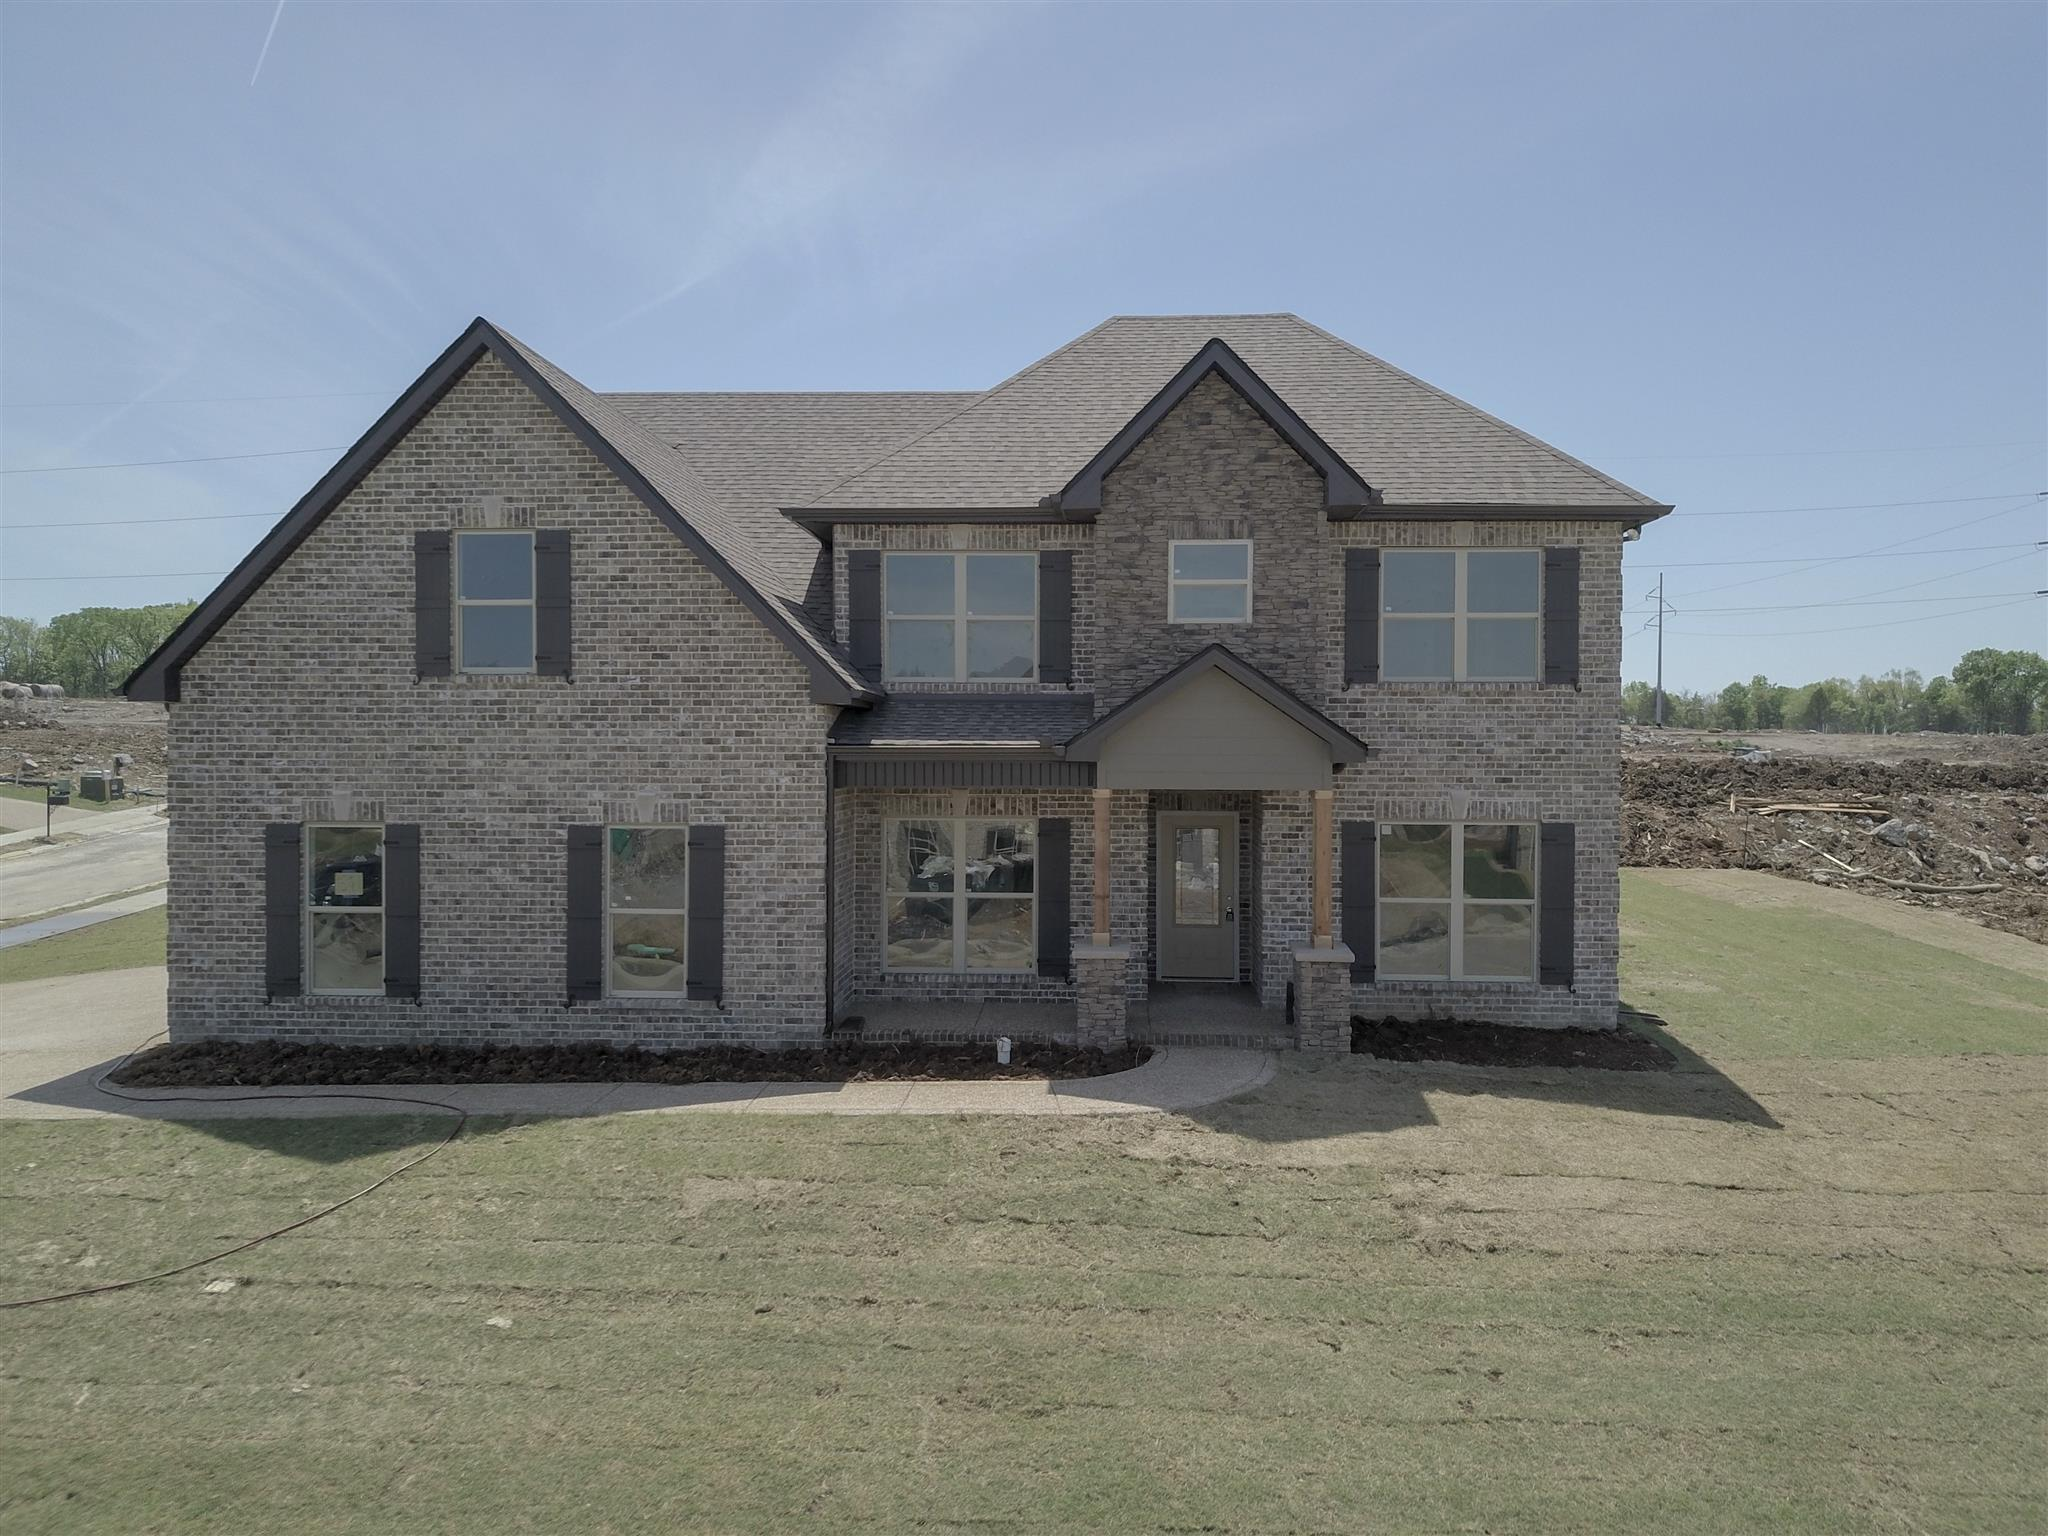 801 Sadie Ann Court, Smyrna, TN 37167 - Smyrna, TN real estate listing